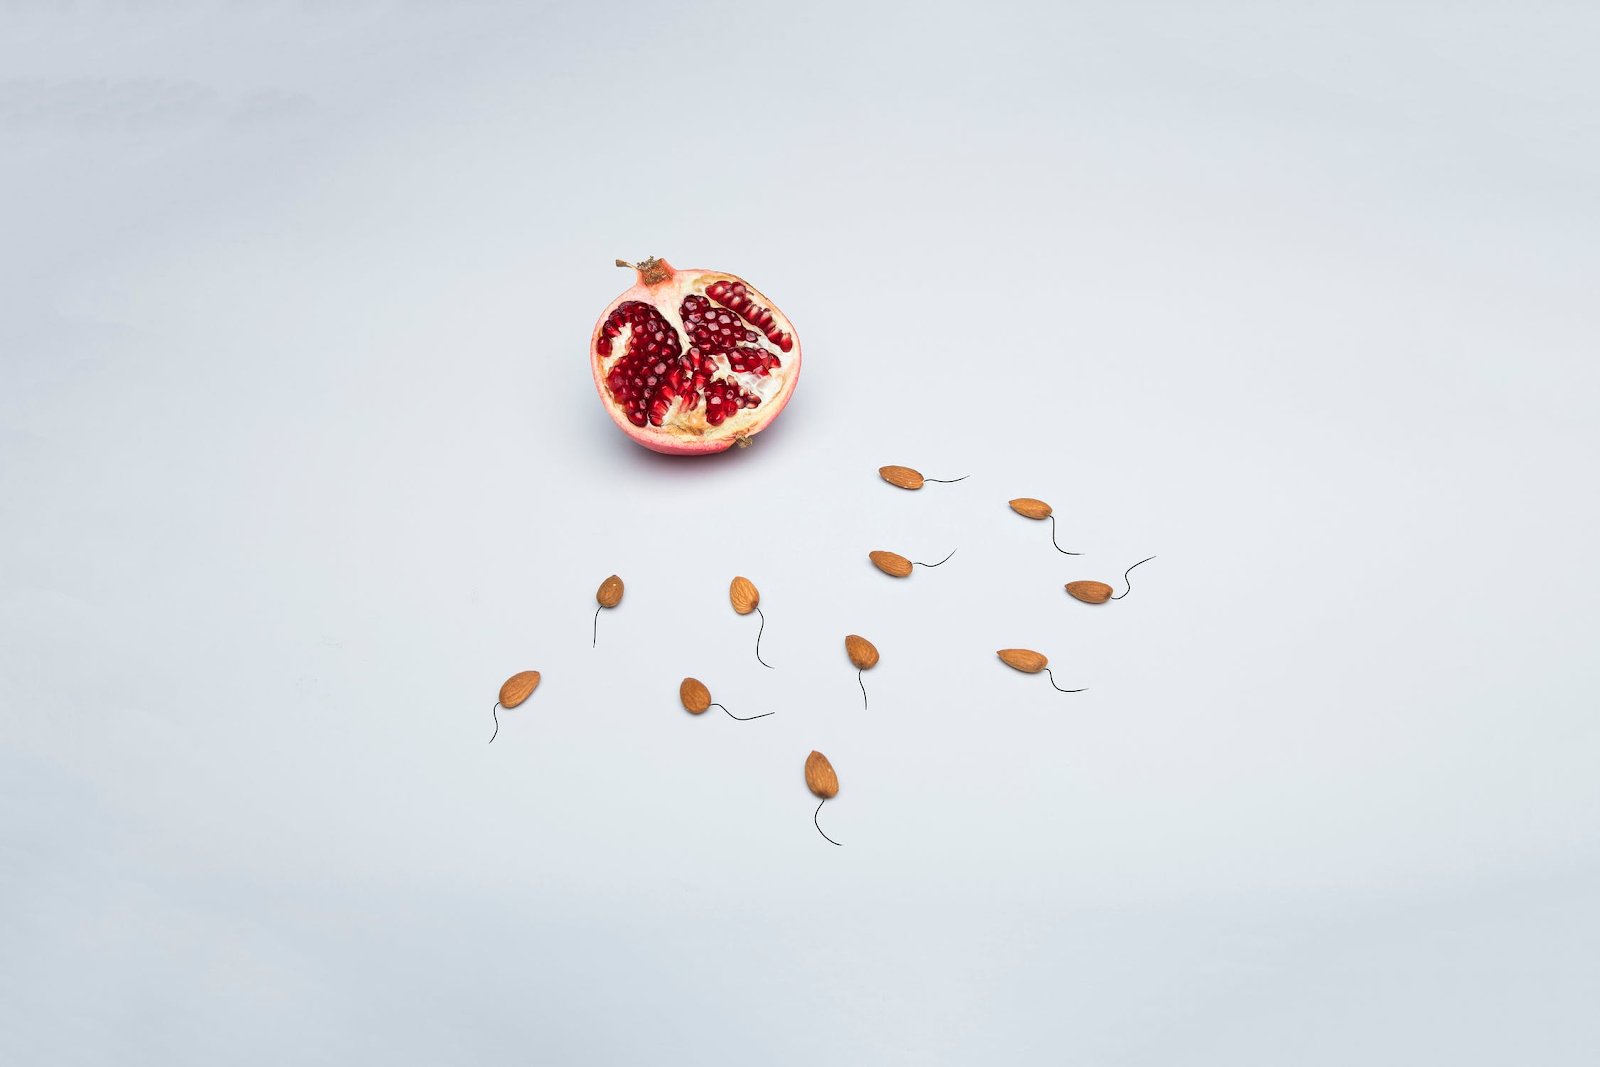 An image of a pomegranate on a plain, white backdrop with almonds positioned around it, lines drawn behind them to make them look like sperm cells.